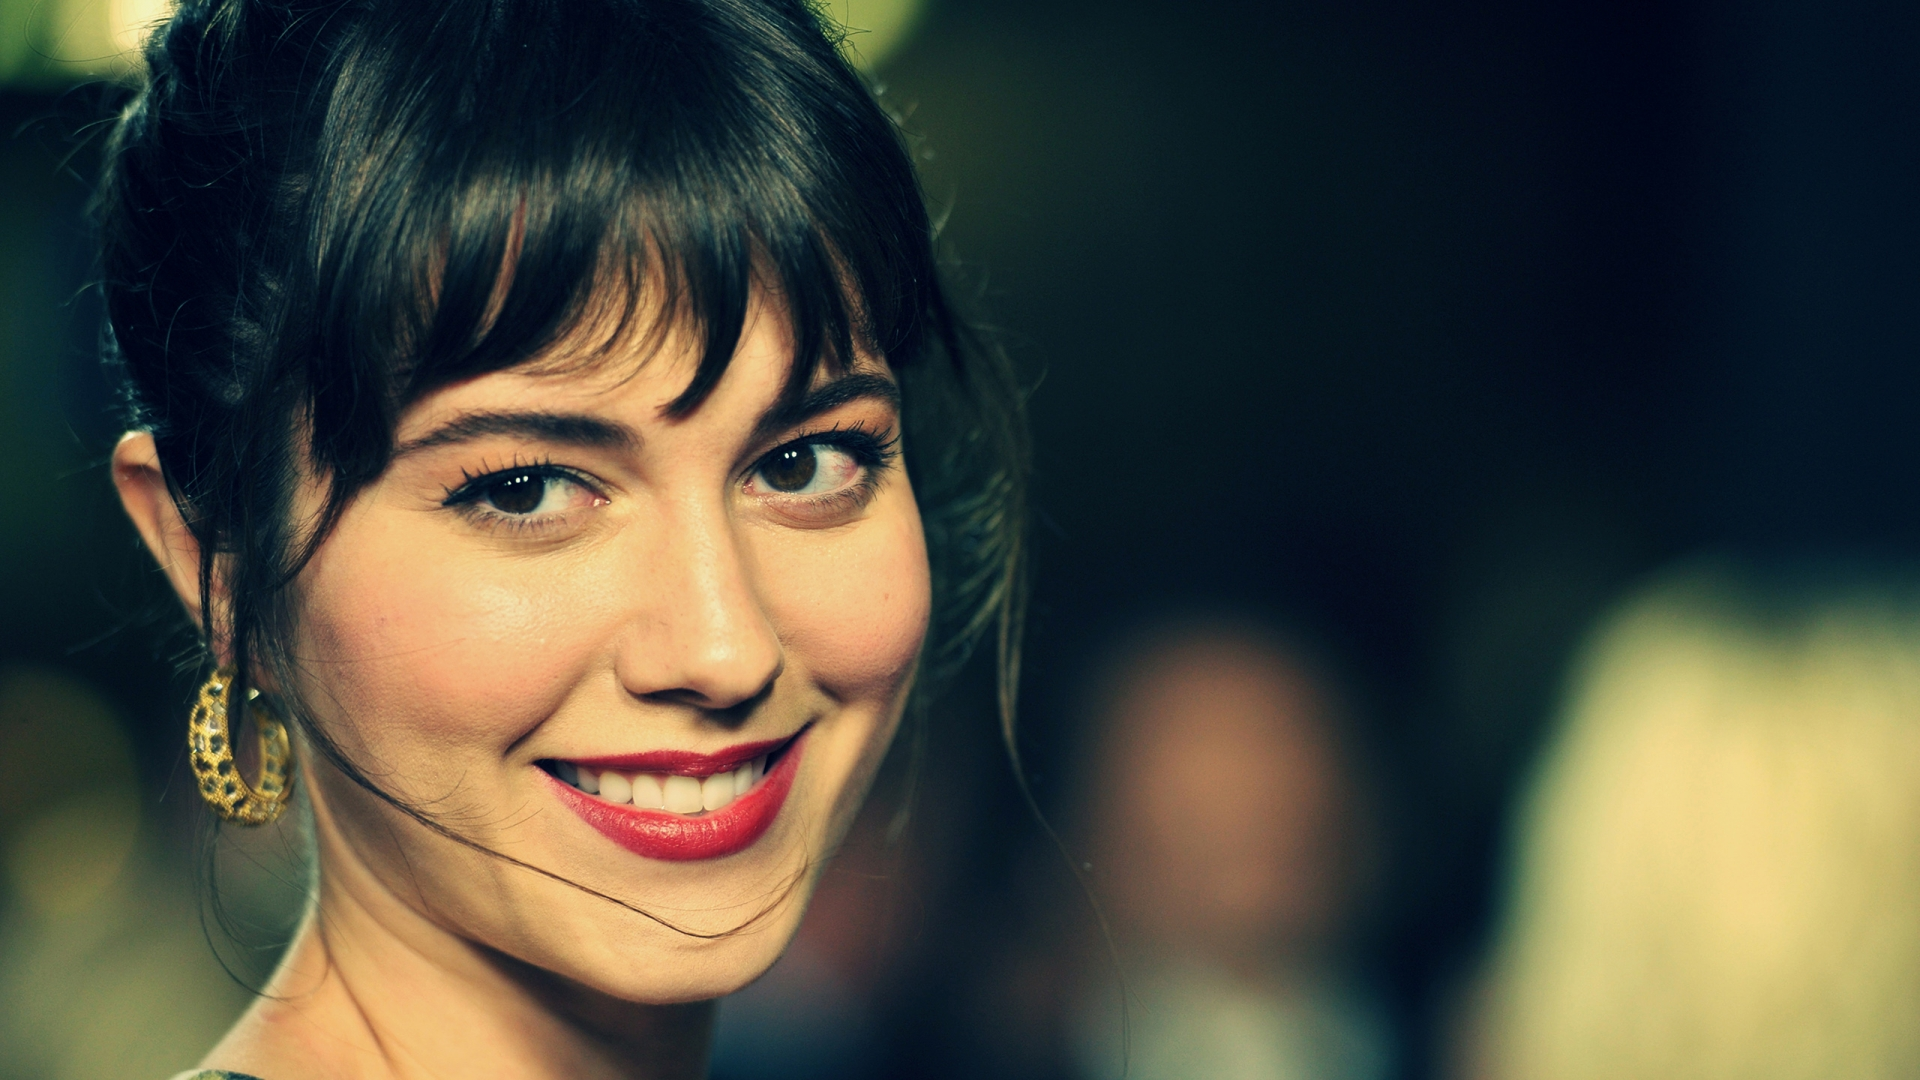 mary elizabeth winstead hd wallpapers for desktop download